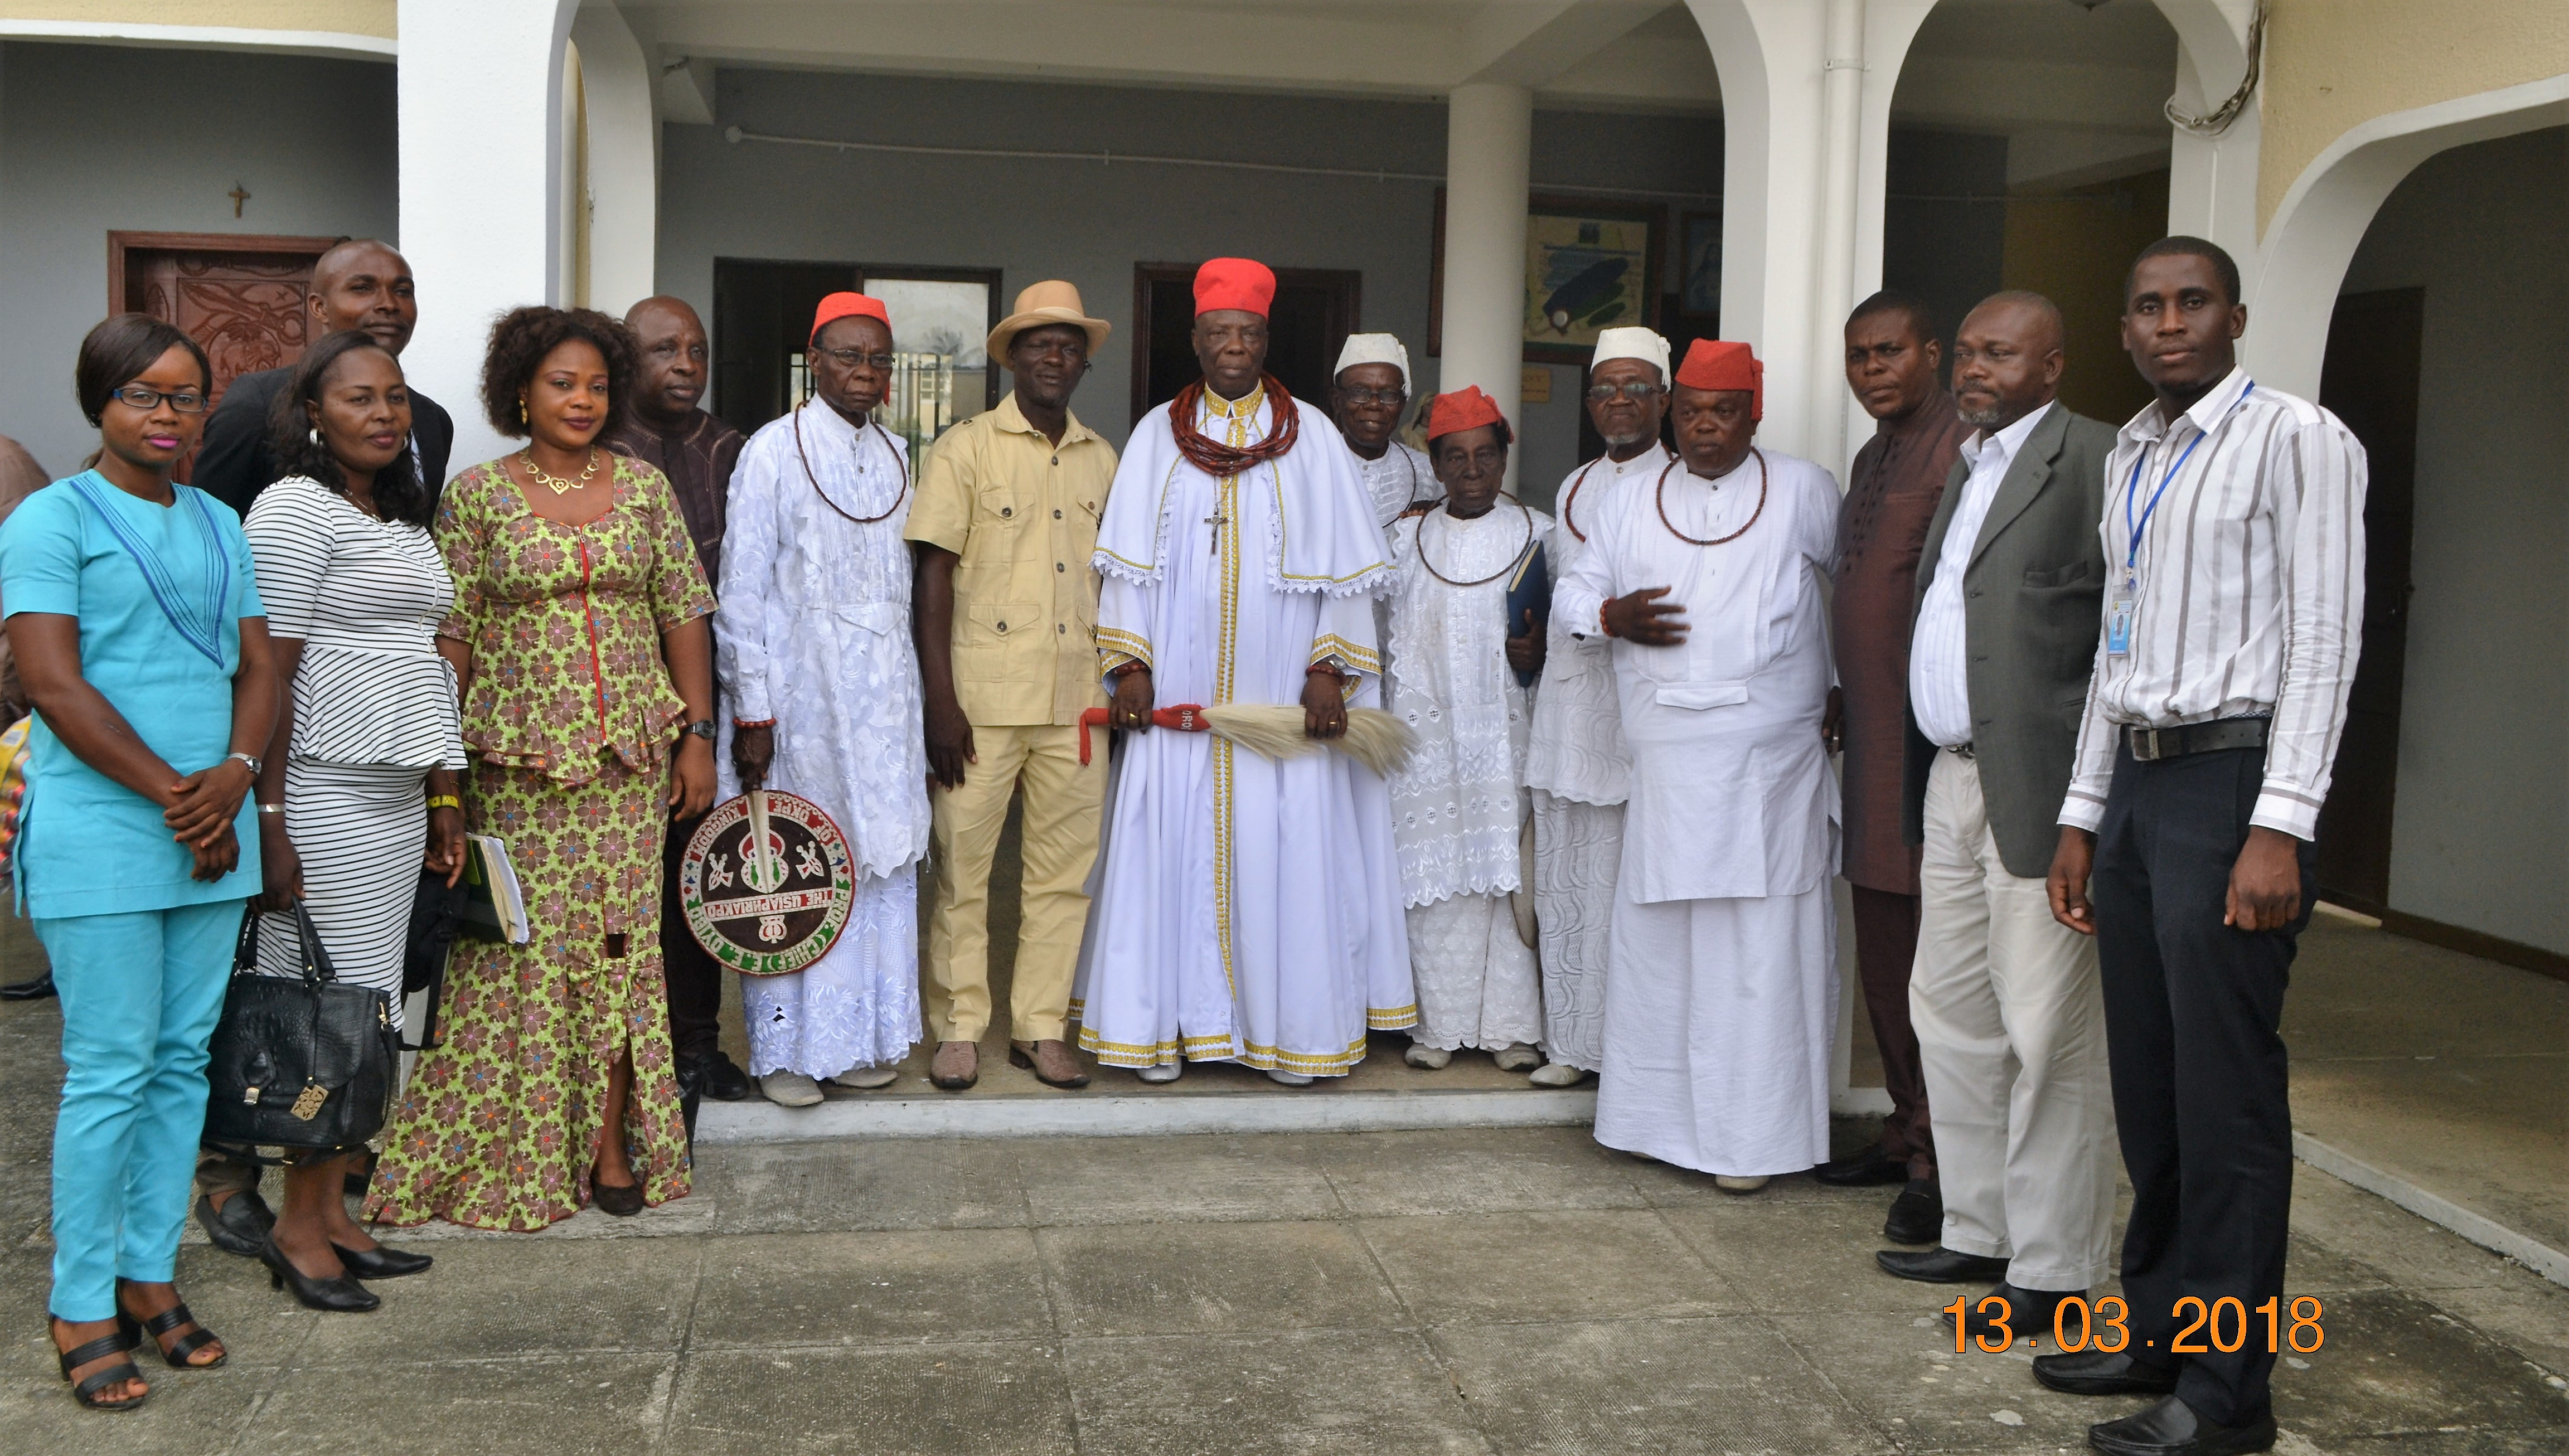 Replicate your conflict resolution professionalism in Okpe, Monarch tells CEPEJ